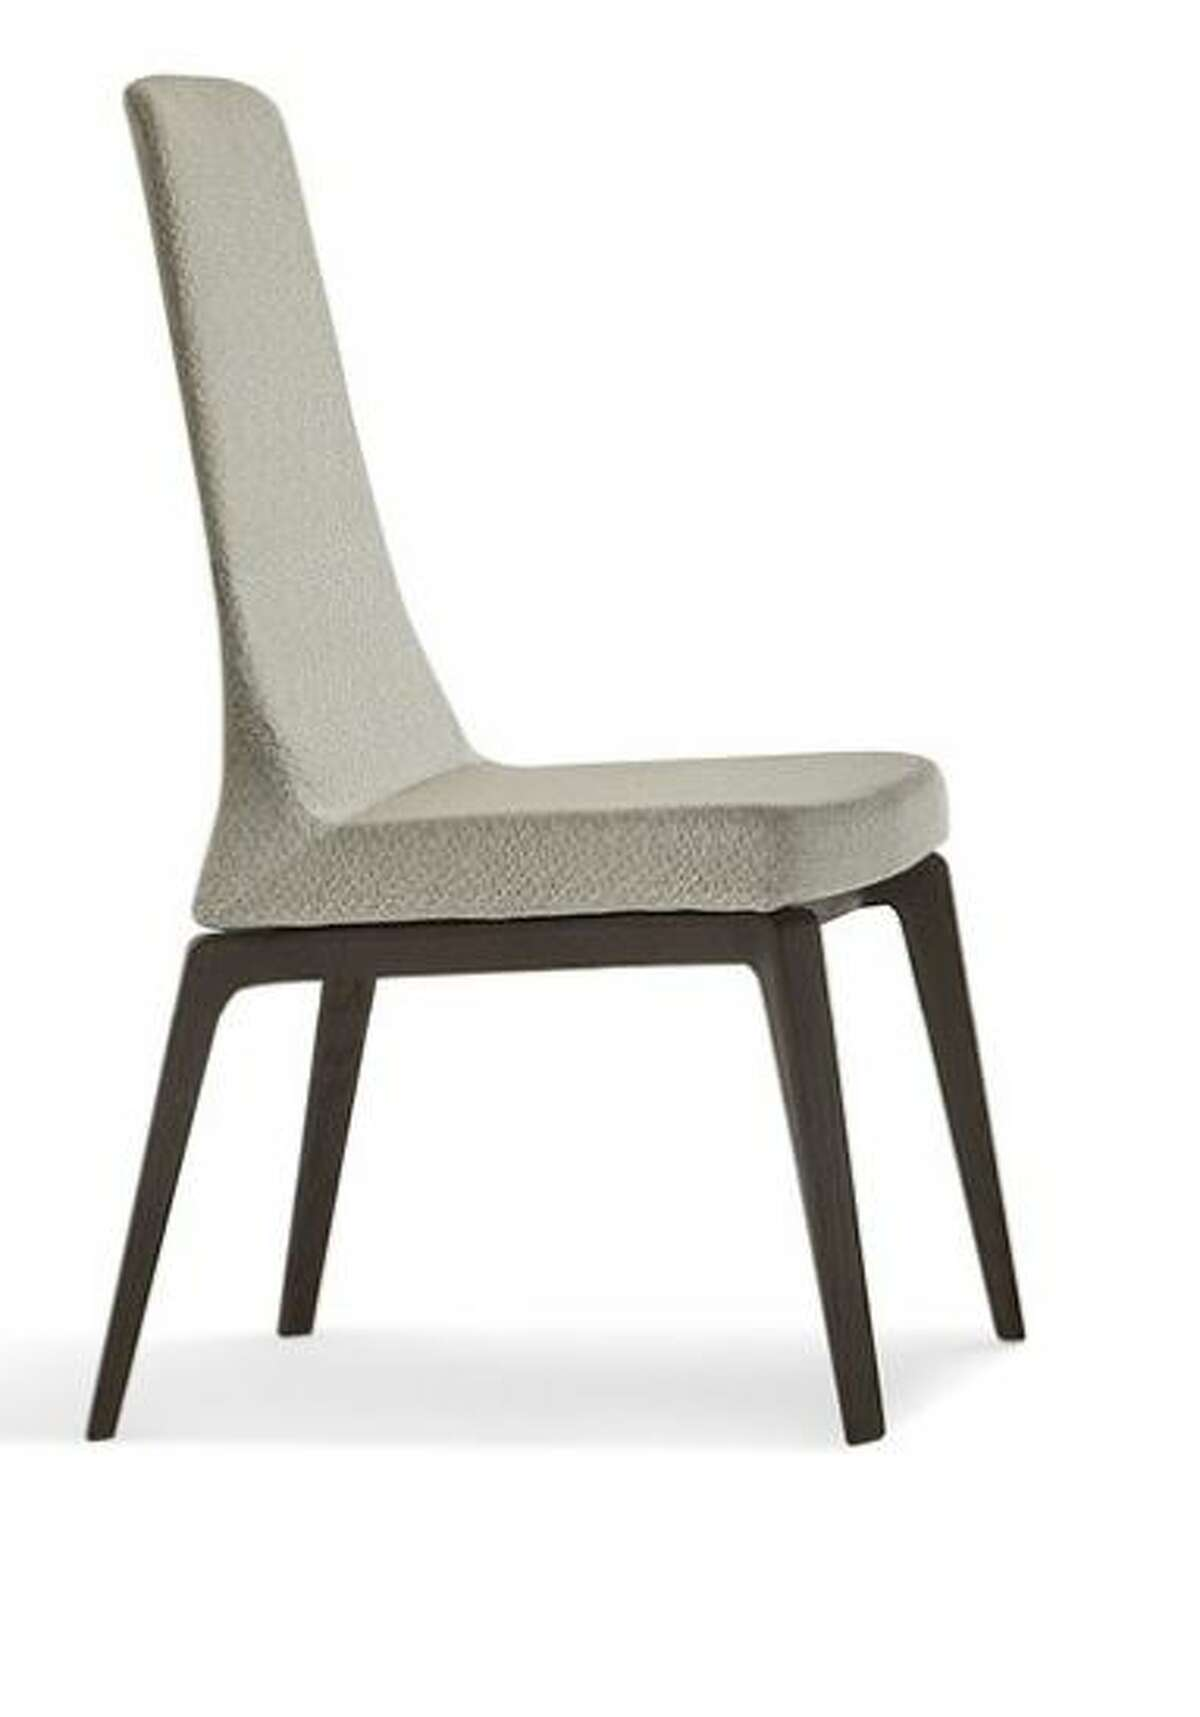 Giorgetti's Ala dining chair starts at $1,200. Feel free to upgrade to executive dining leather.